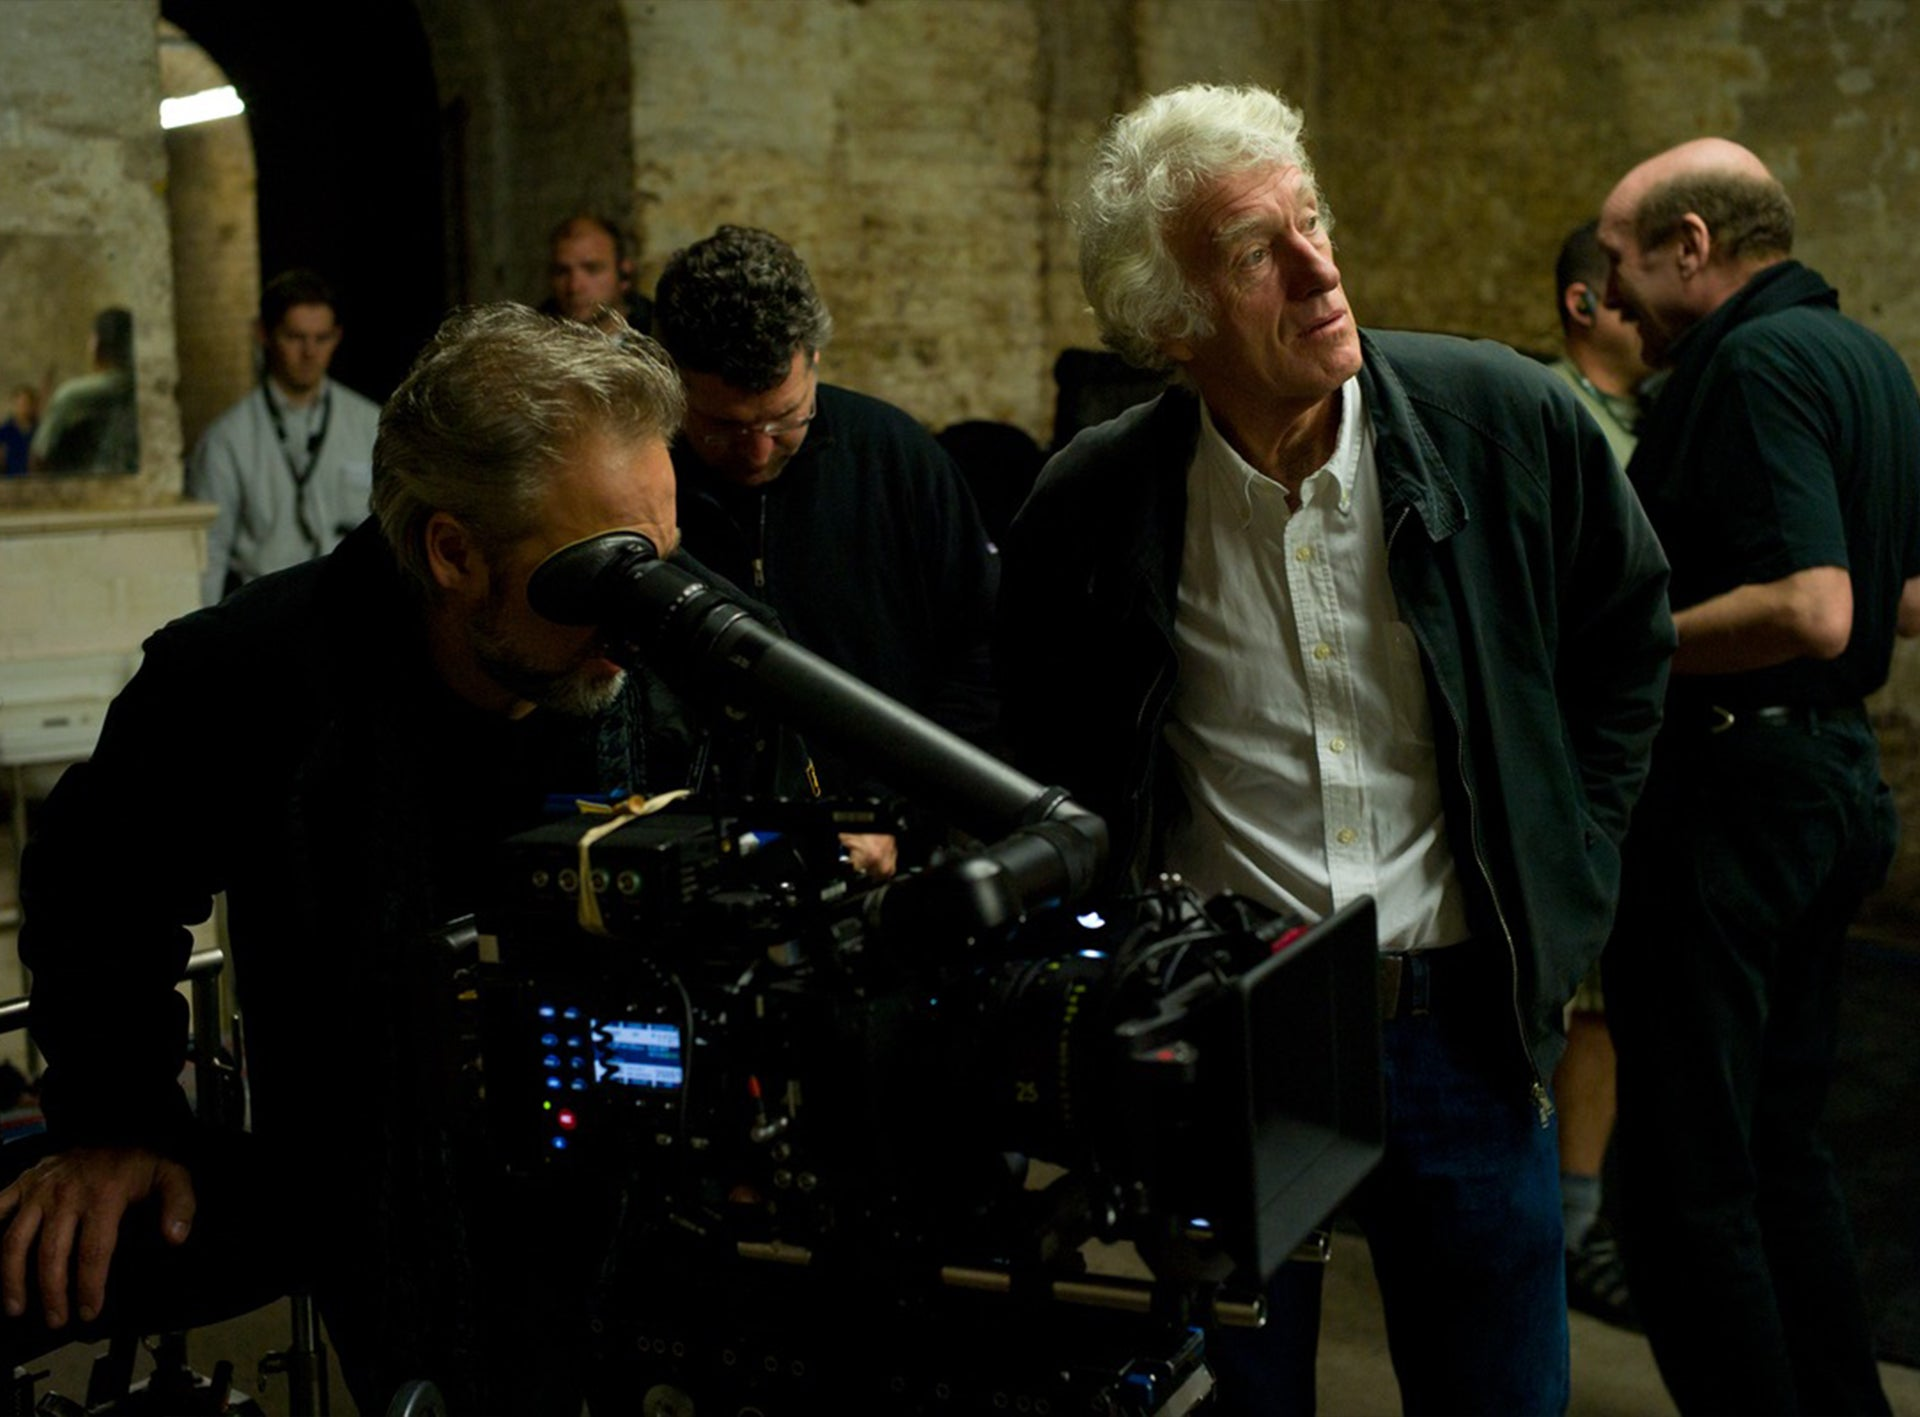 Roger Deakins awarded knighthood